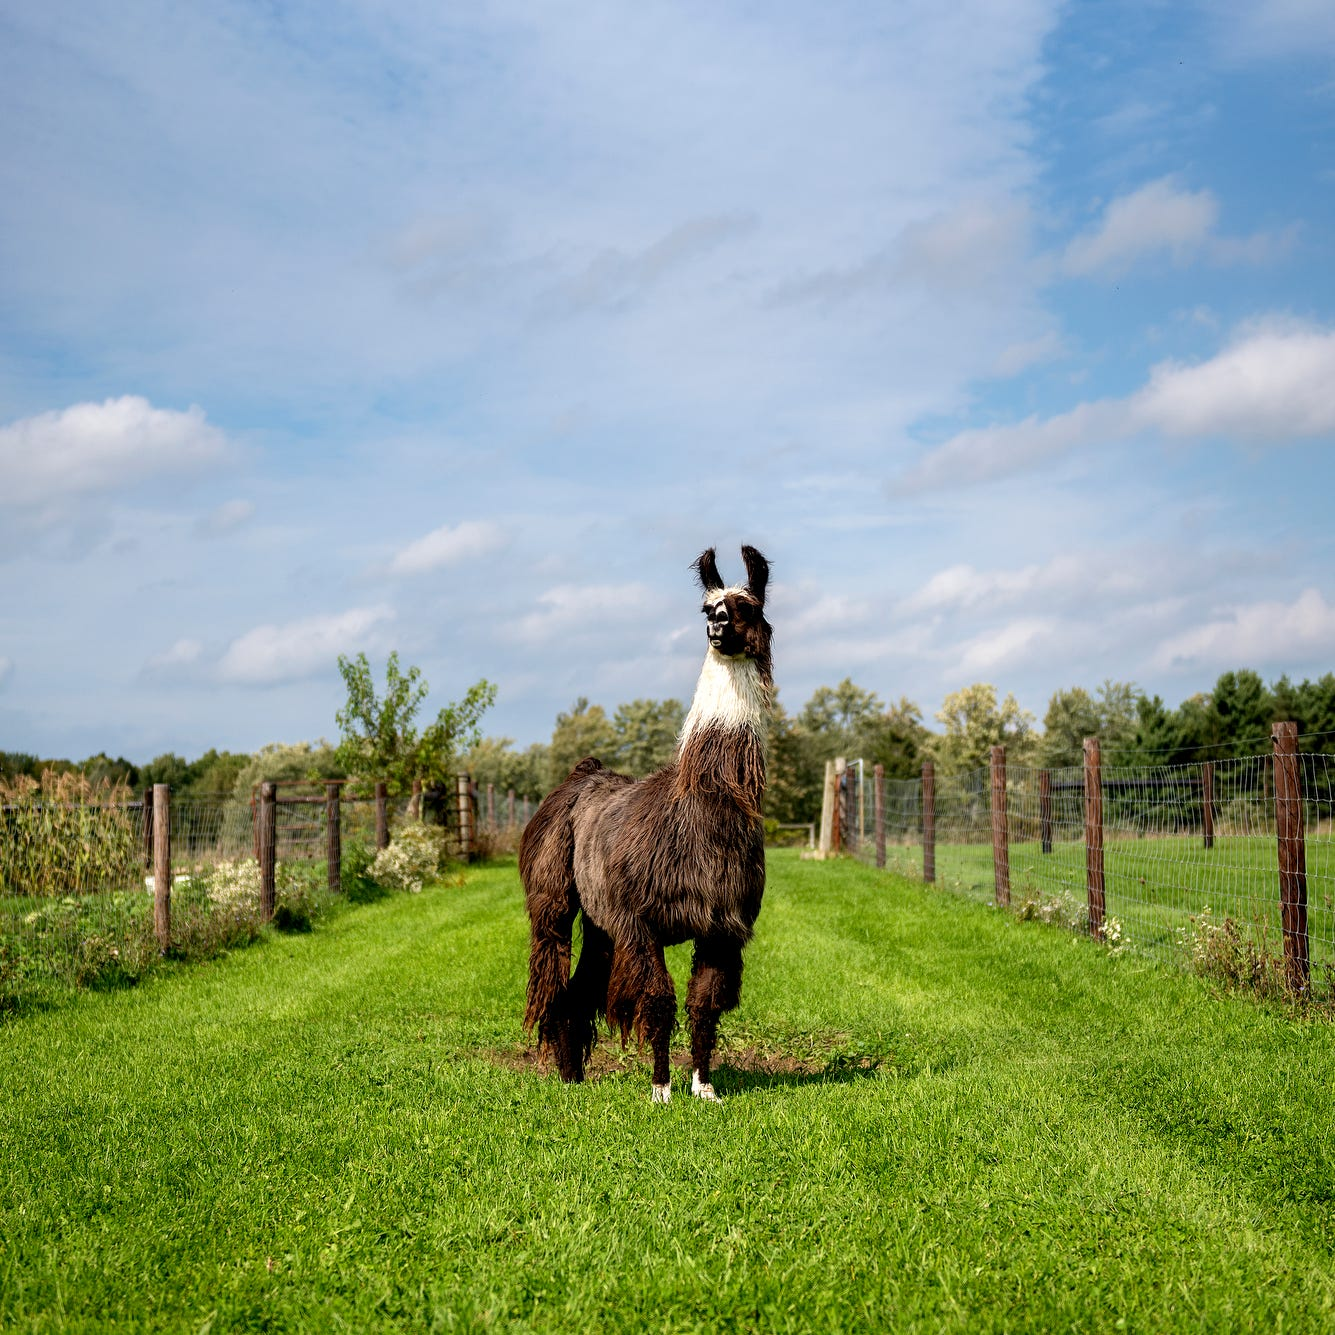 Willowicke Inn in Williamston is part llama farm, part bed and breakfast